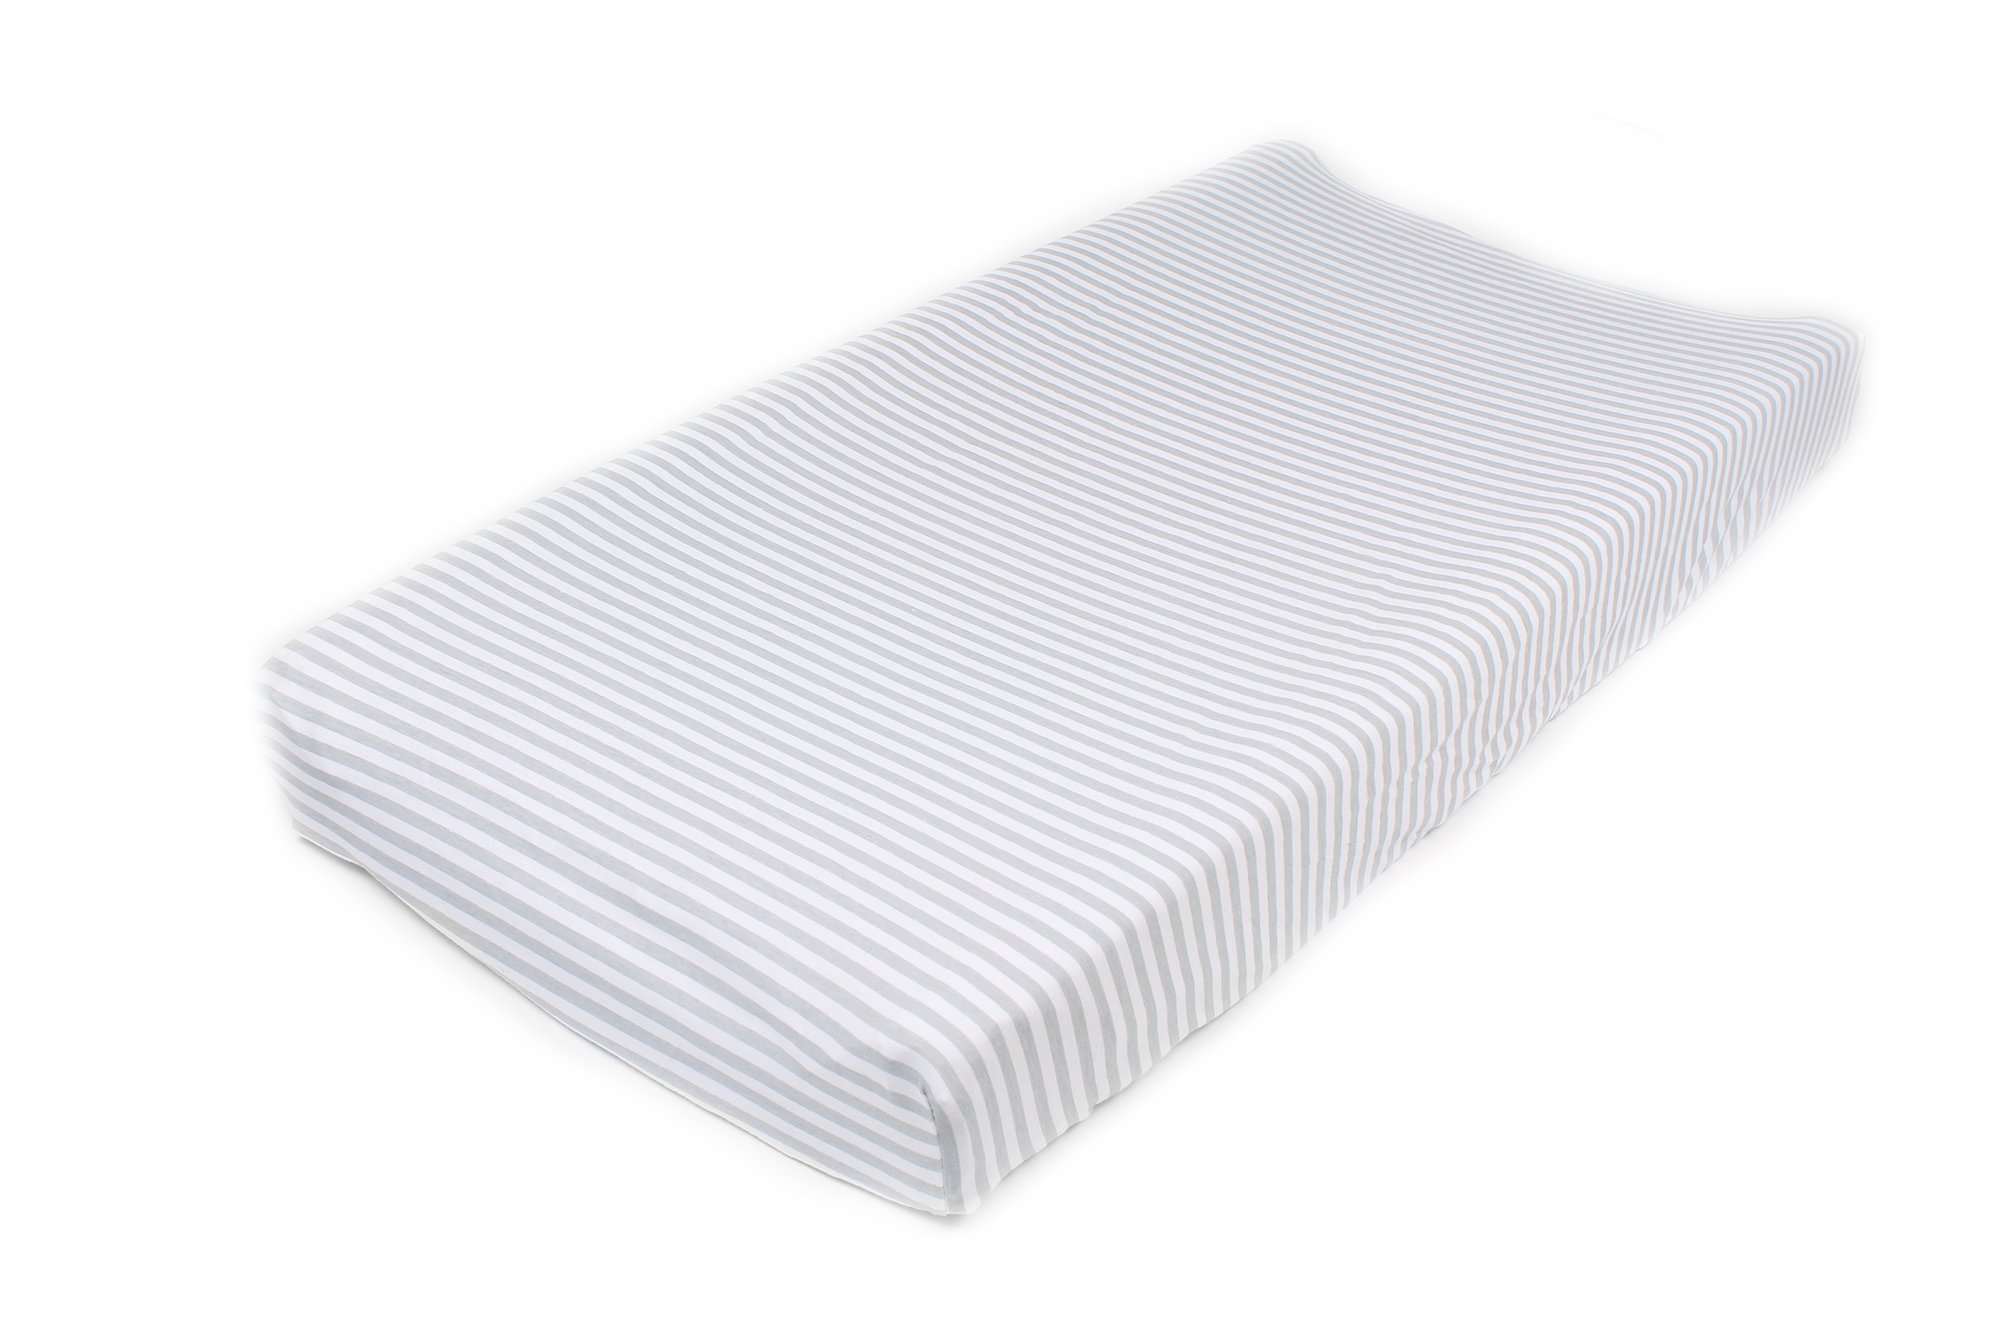 Cotton Diaper Changing Pad Cover 2 Pack Stripes & Clouds by Mumby by Mumby (Image #4)